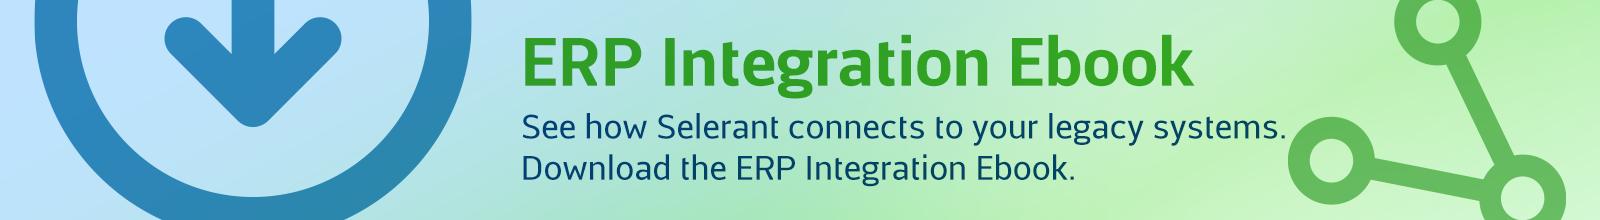 Selerant-ERP-integration